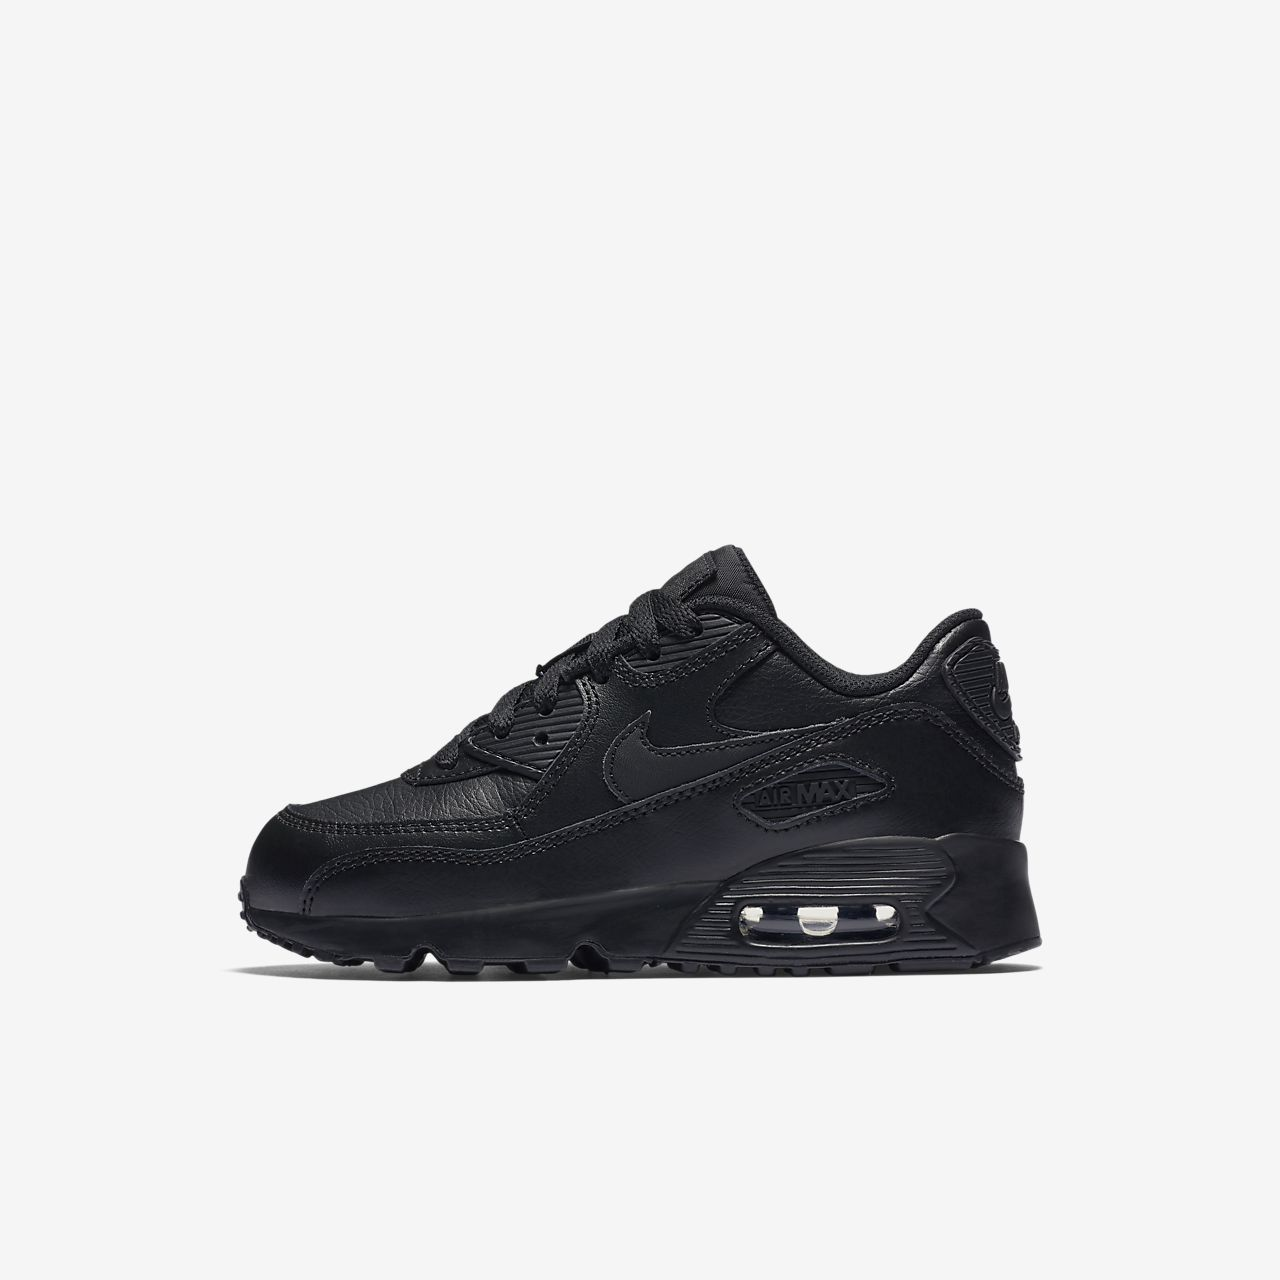 Sko Nike Air Max 90 Leather för barn